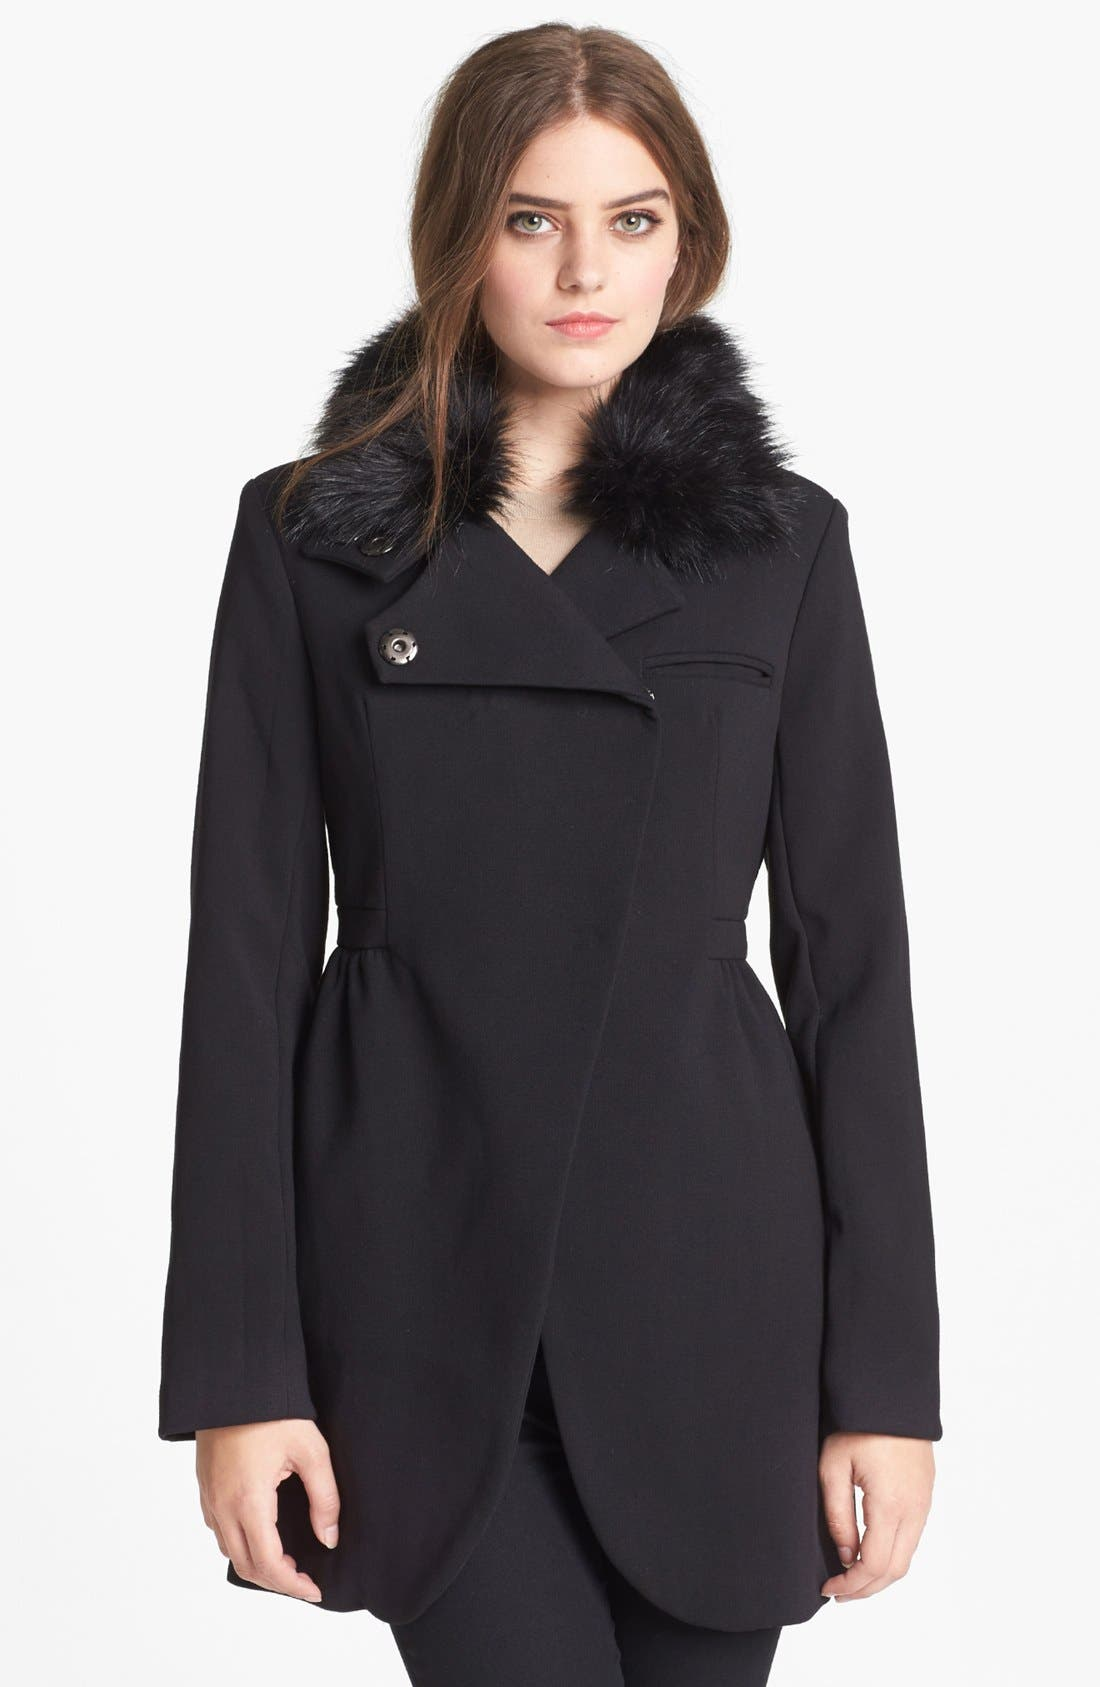 Alternate Image 1 Selected - bebe Asymmetrical Coat with Detachable Faux Fur Collar